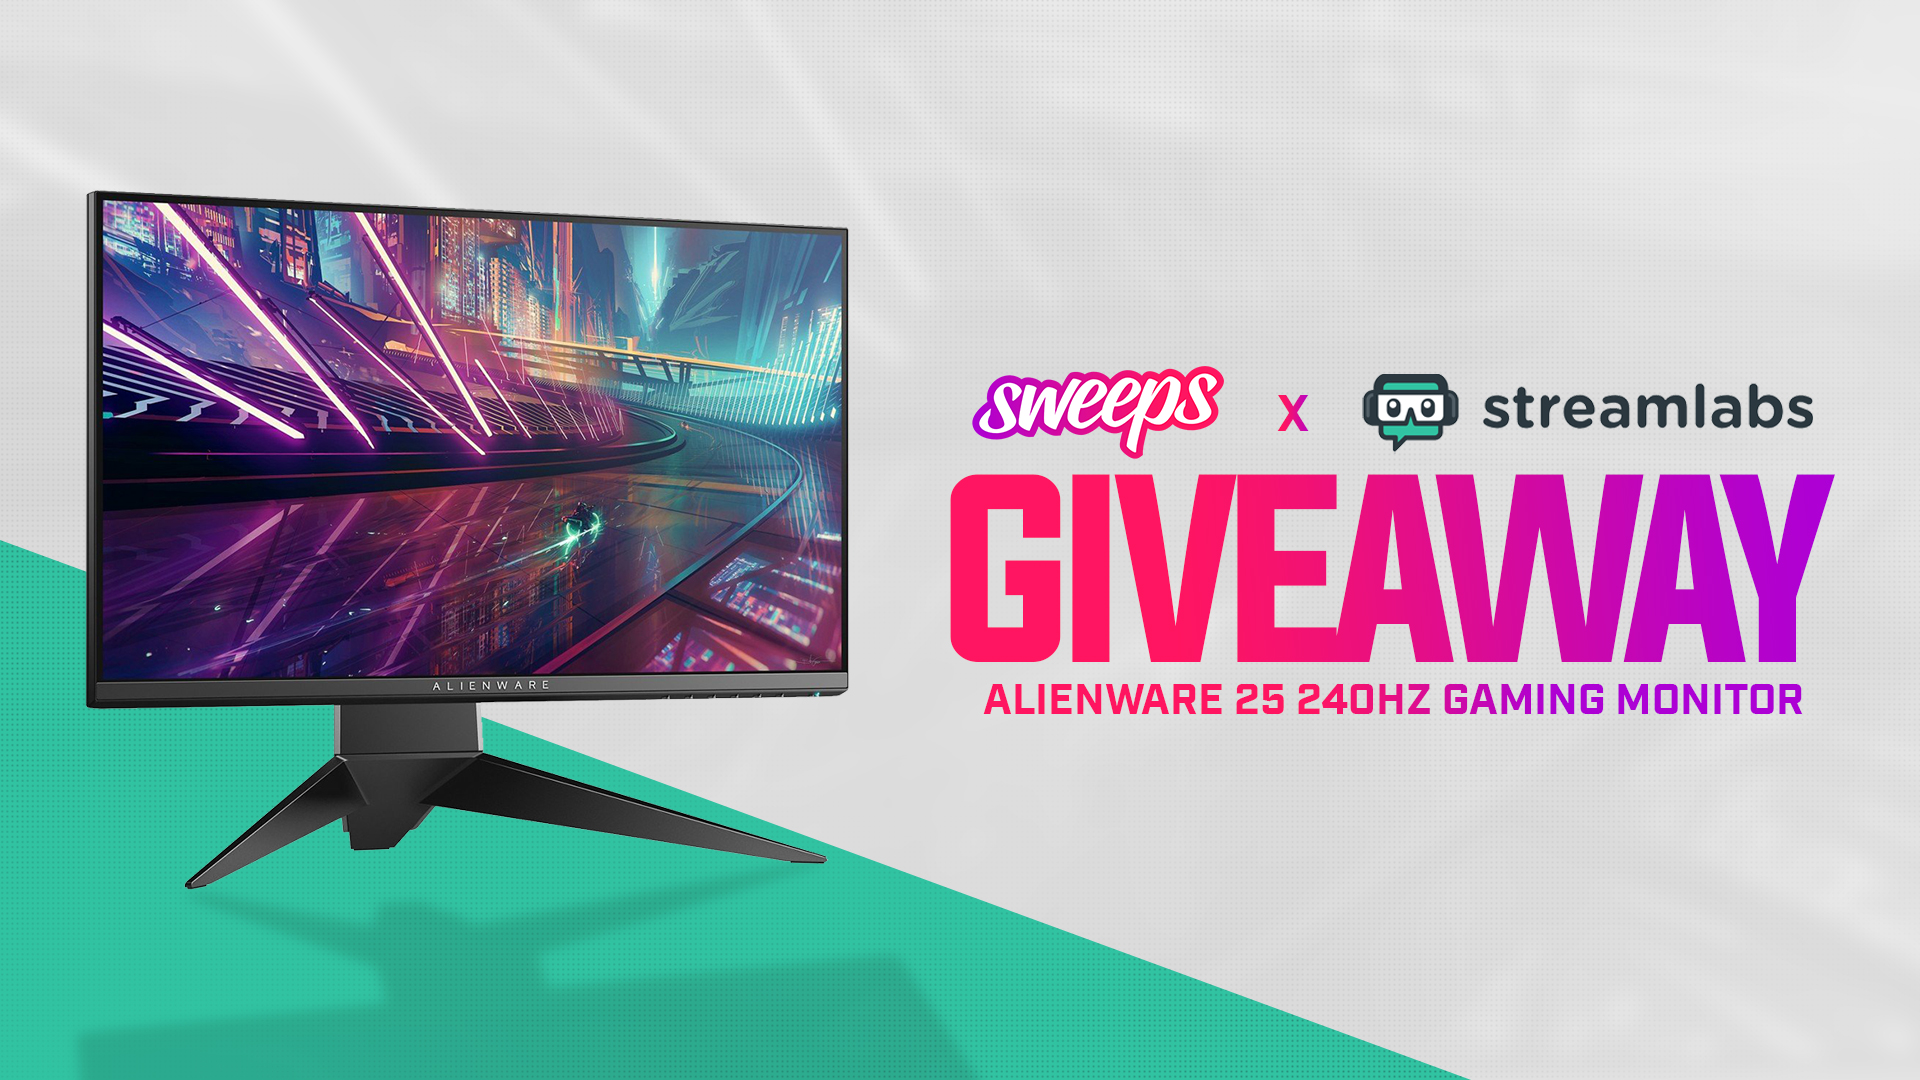 Alienware 25 250Hz Gaming Monitor Giveaway Giveaway Image